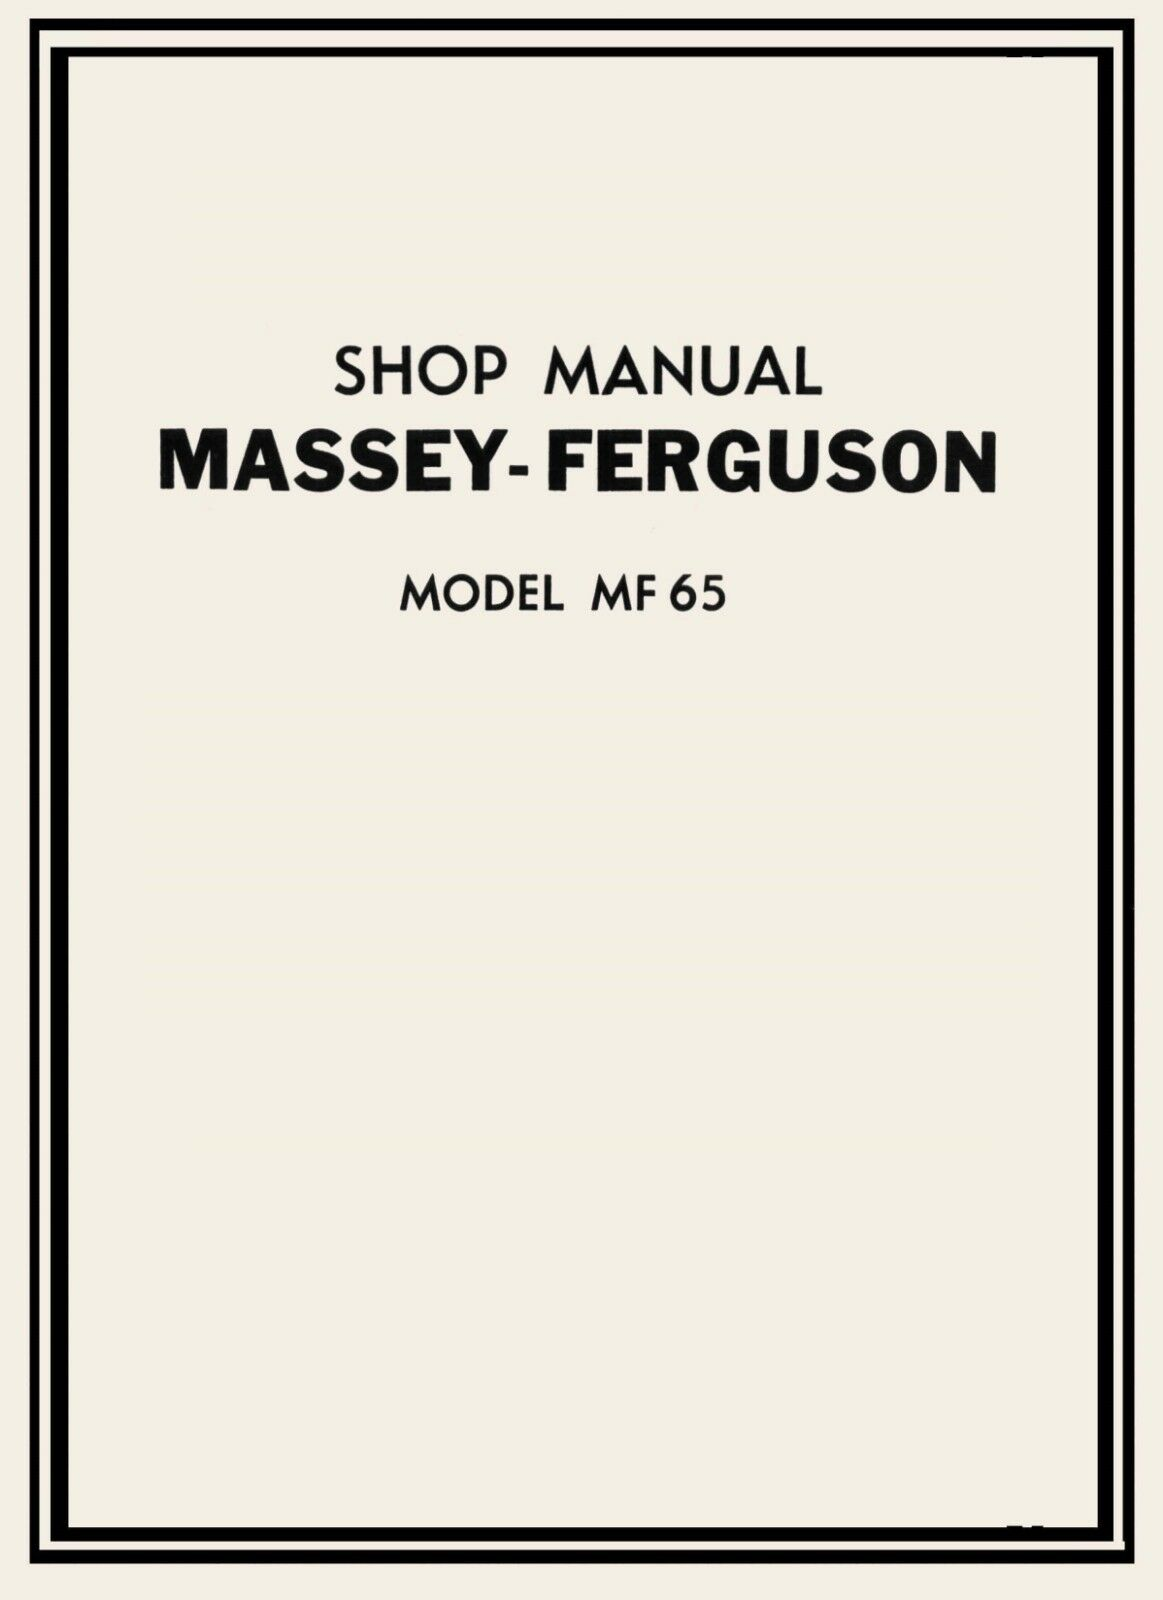 Massey Ferguson MF 65 Tractor Service Manual & Parts Manual on CD MF65 1 of  9Only 3 available ...